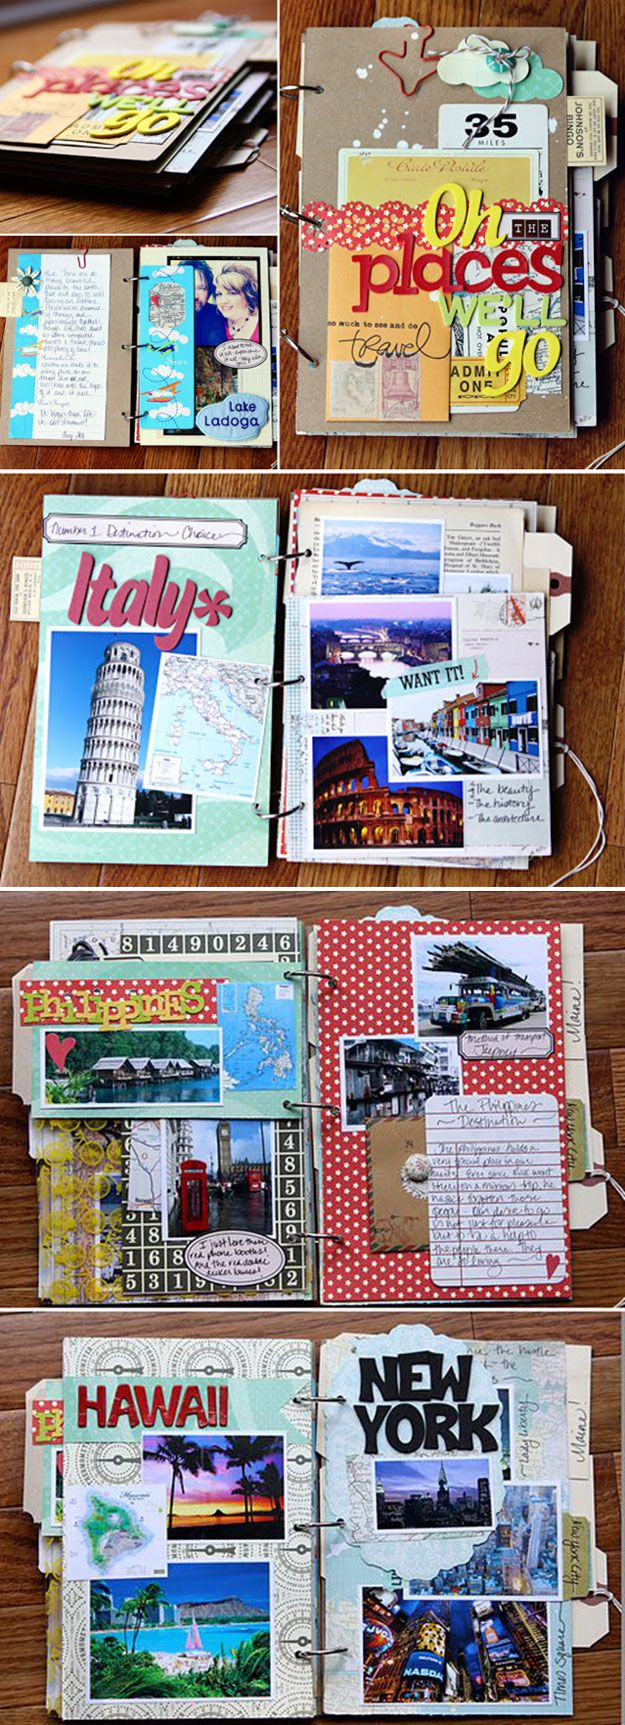 Travel Scrapbook - How to Scrapbook